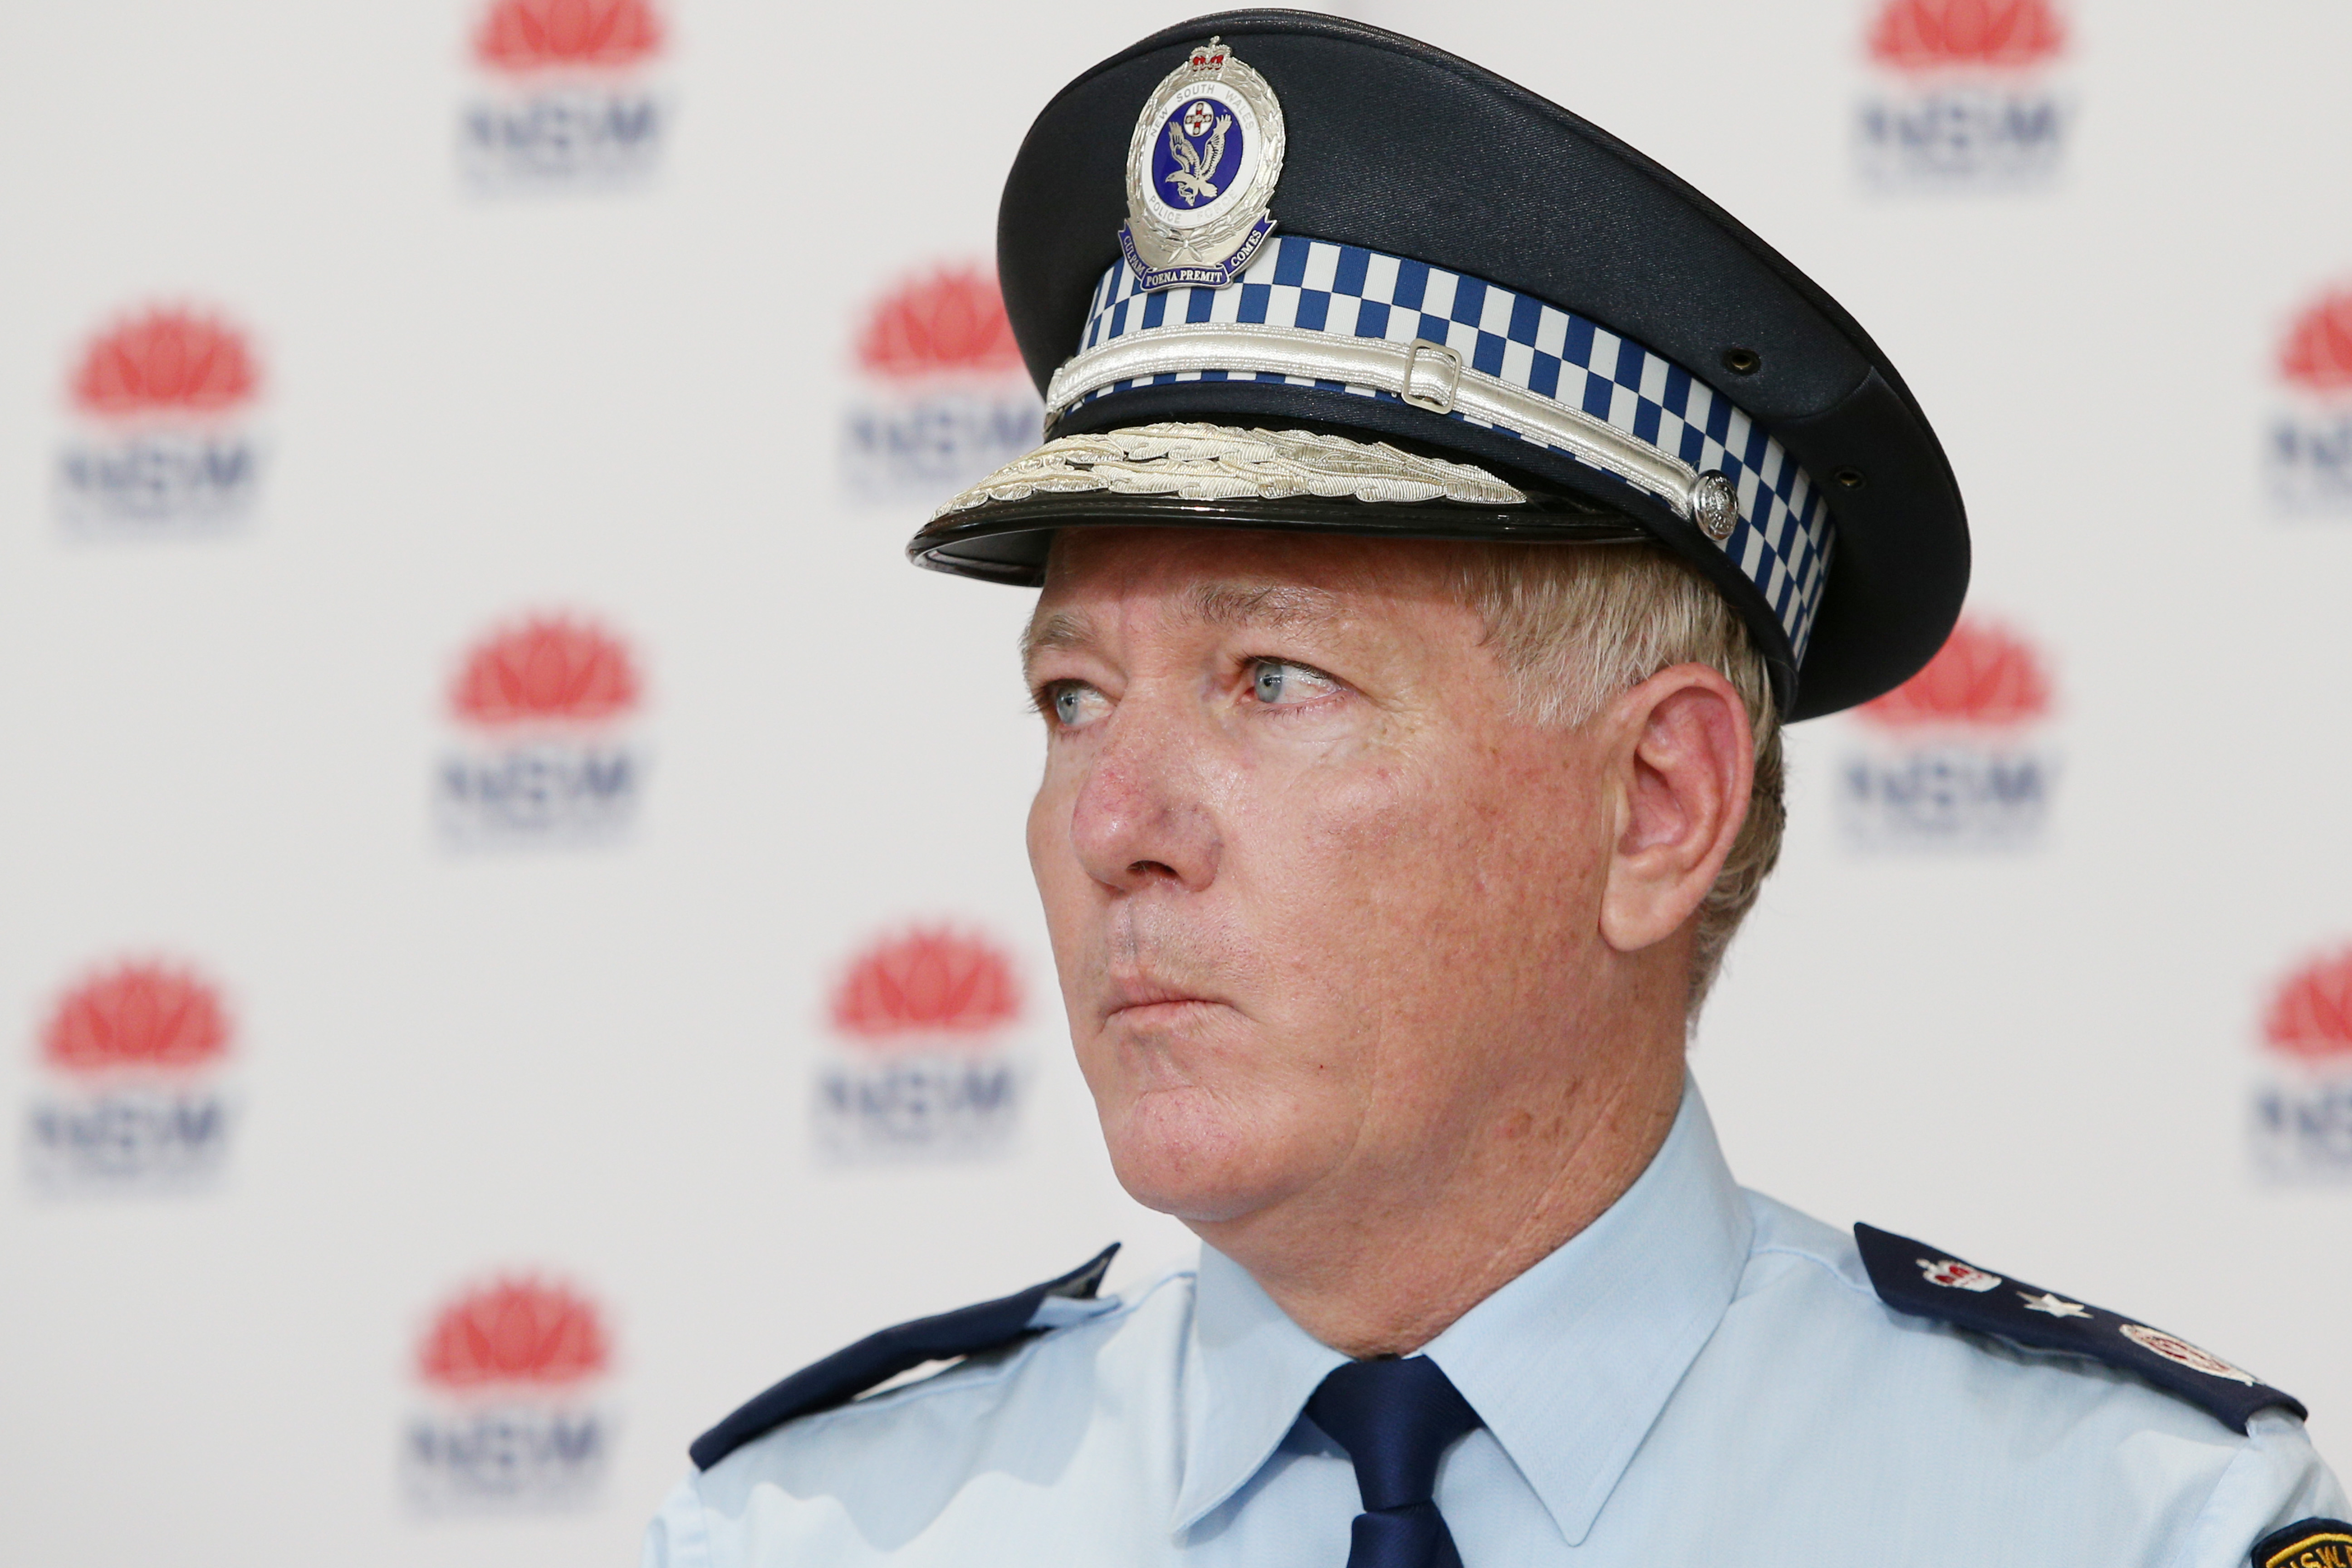 NSW Police Commissioner Mick Fuller said police handed out more than 800 COVID-related infringements in the past day.